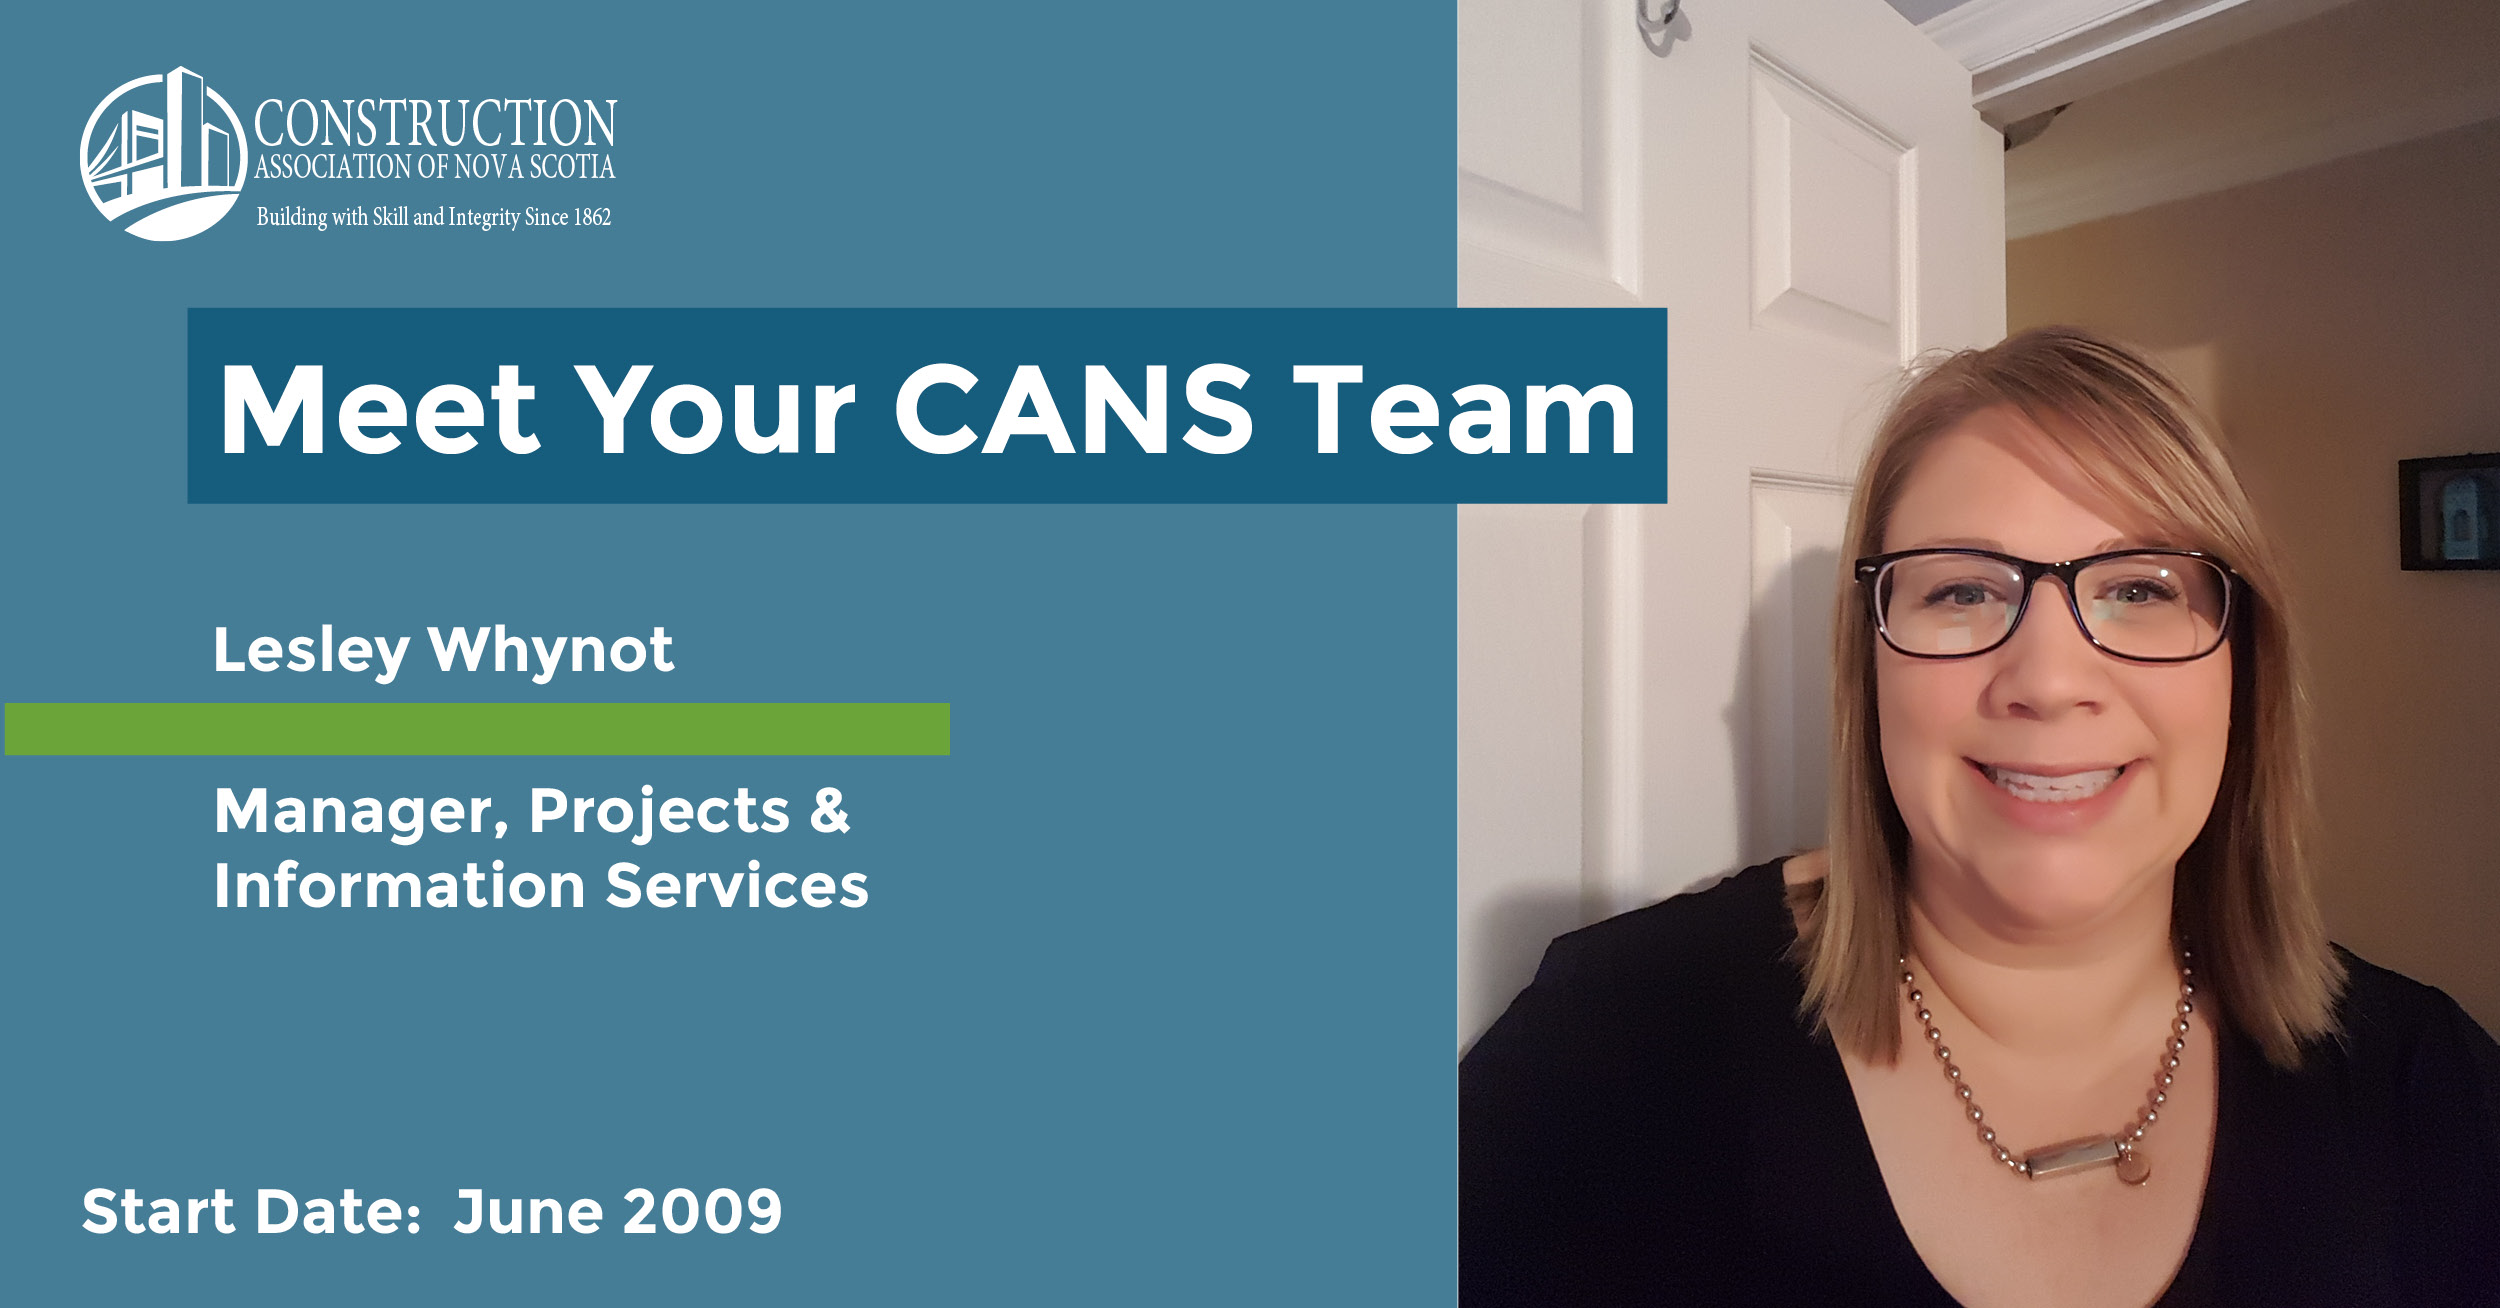 Headline reads Meet Your CANS Team. Lesley Whynot – Manager, Projects & Information Services. Start date: June 2009. Photo is a selfie of Lesley smiling.